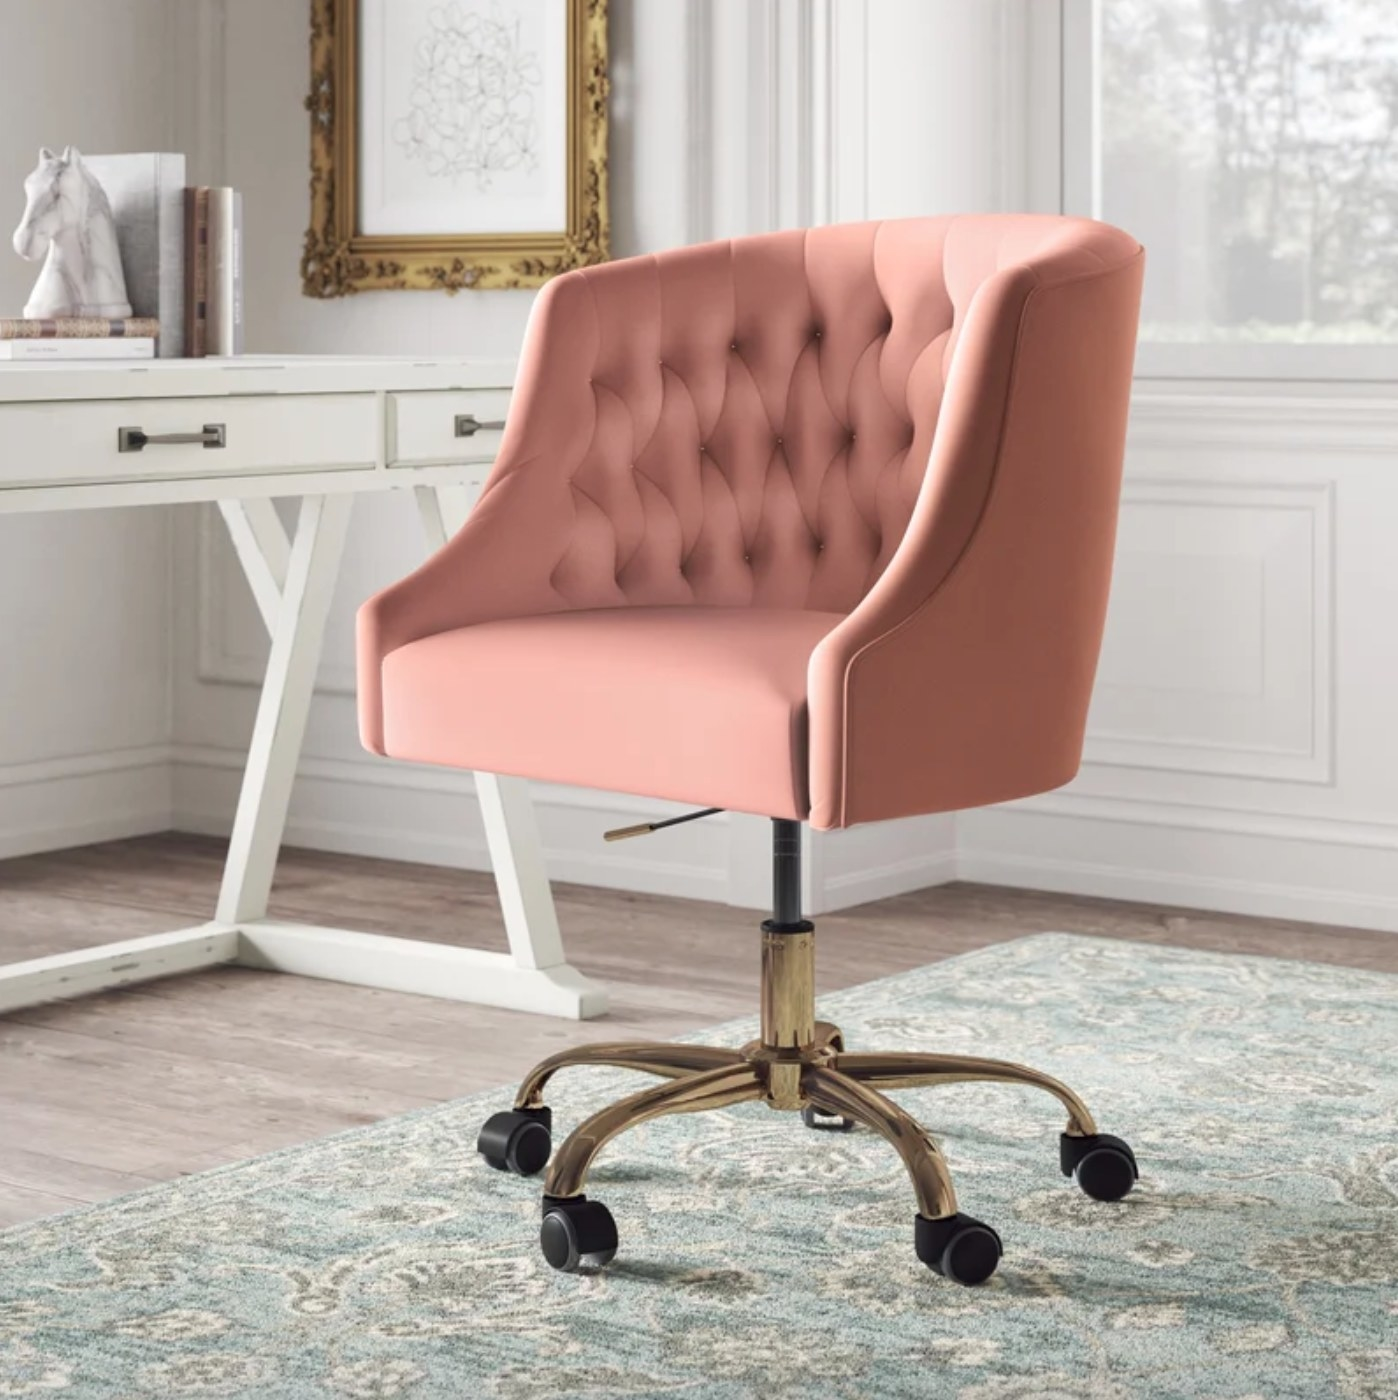 the Kelly Clarkson task chair in pink